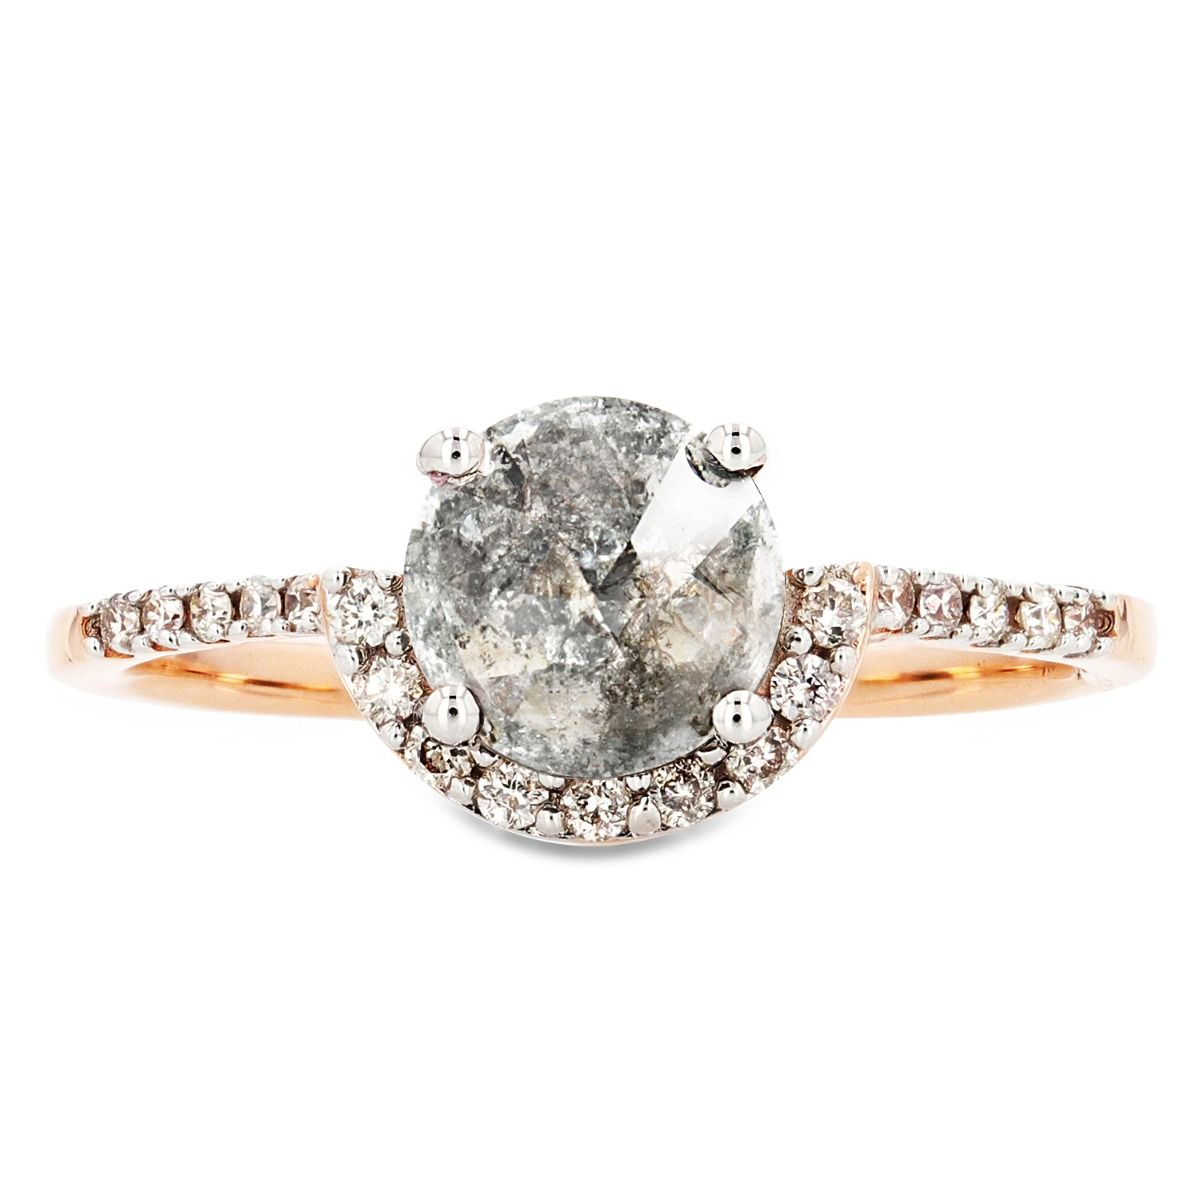 14k Rose Gold Round Salt and Pepper Diamond Ring with White Diamond Half Halo and Sidestones